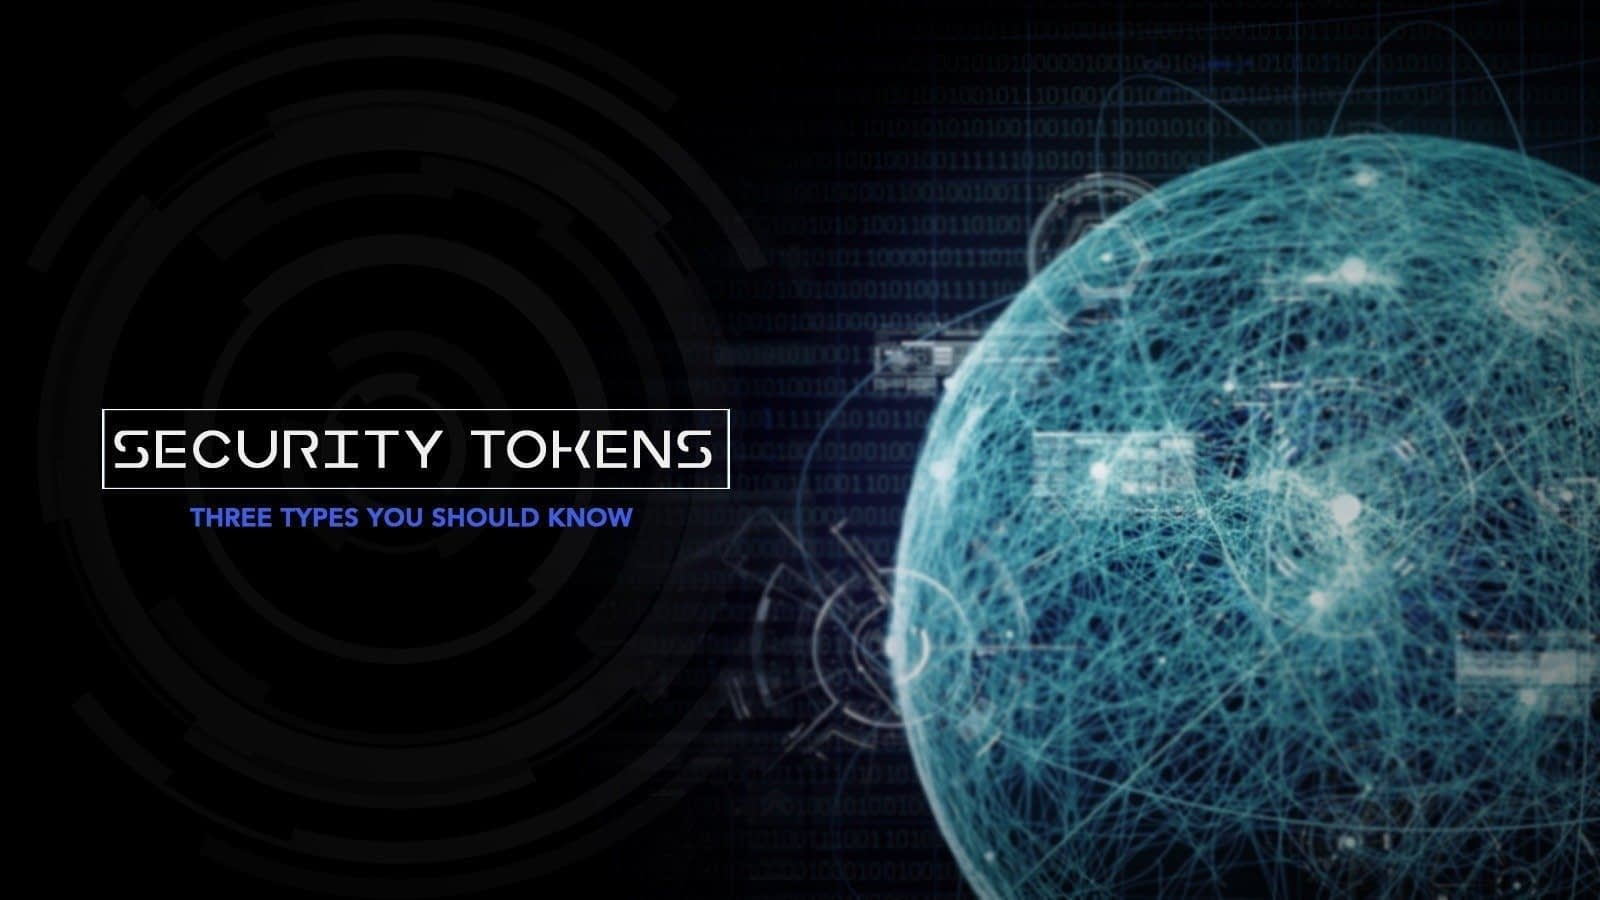 Three types of security tokens you should know about